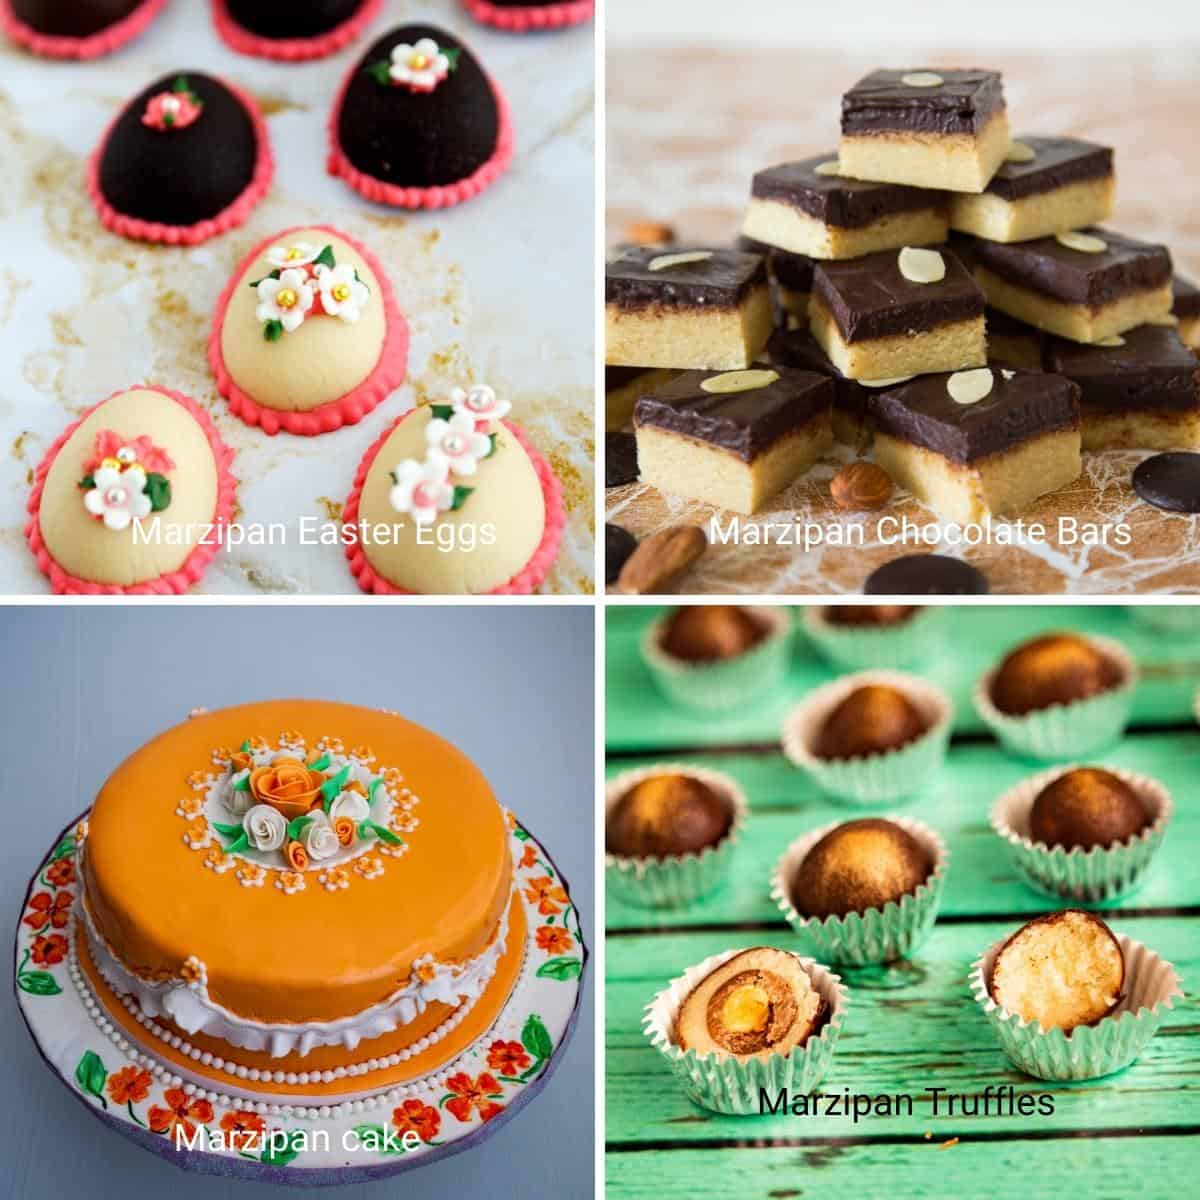 Collage of marzipan treats - cakes, easter eggs, truffles, bars.